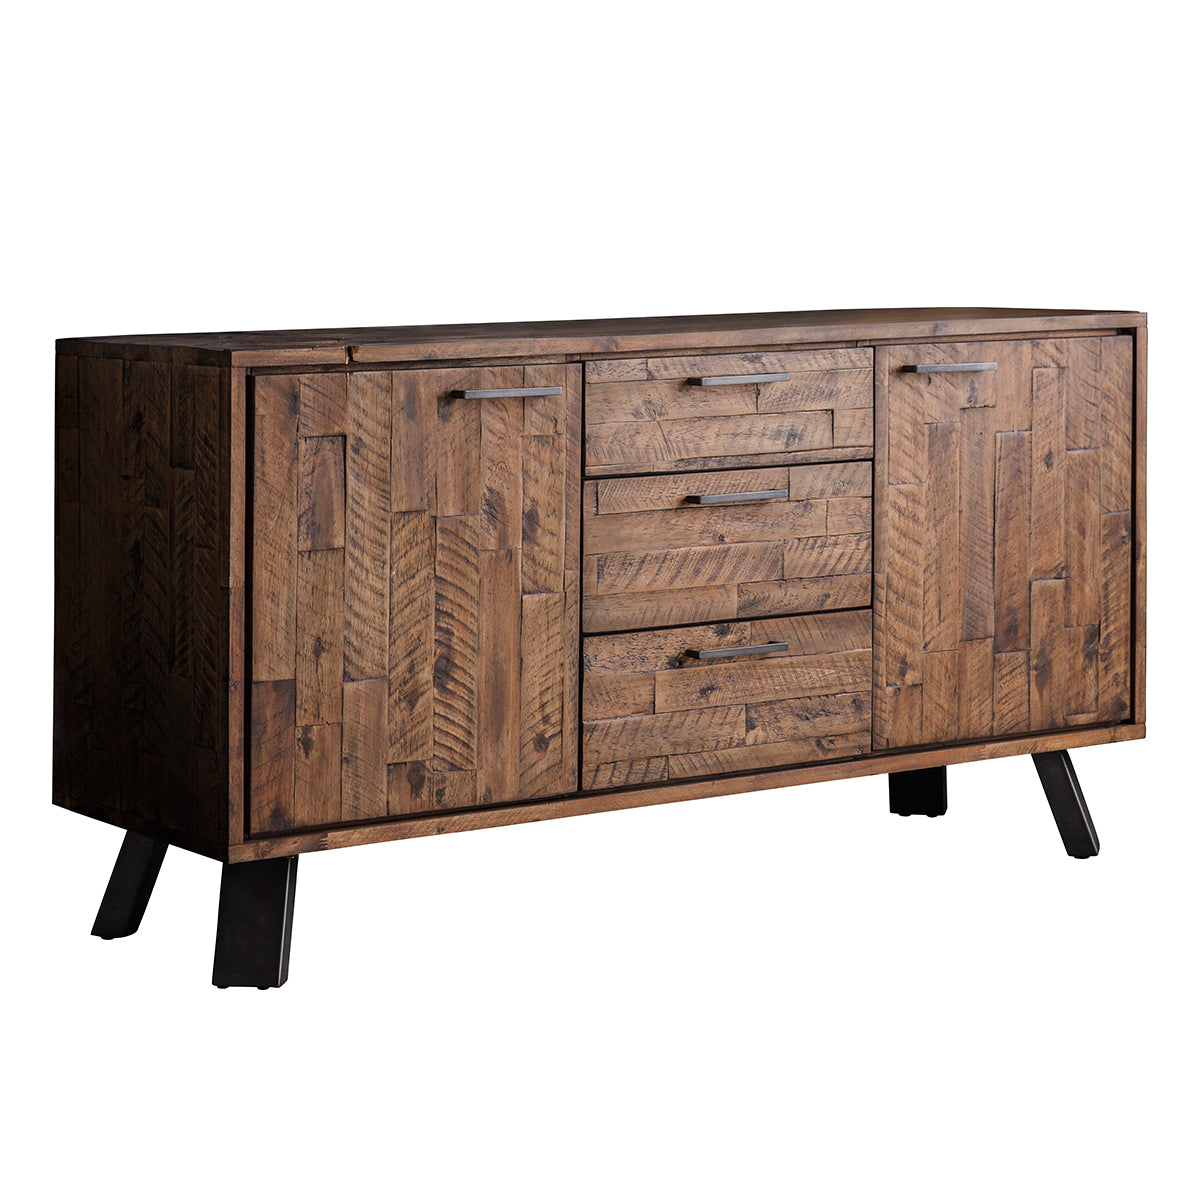 Somers 2 door 3 Drawer Sideboard Rustic